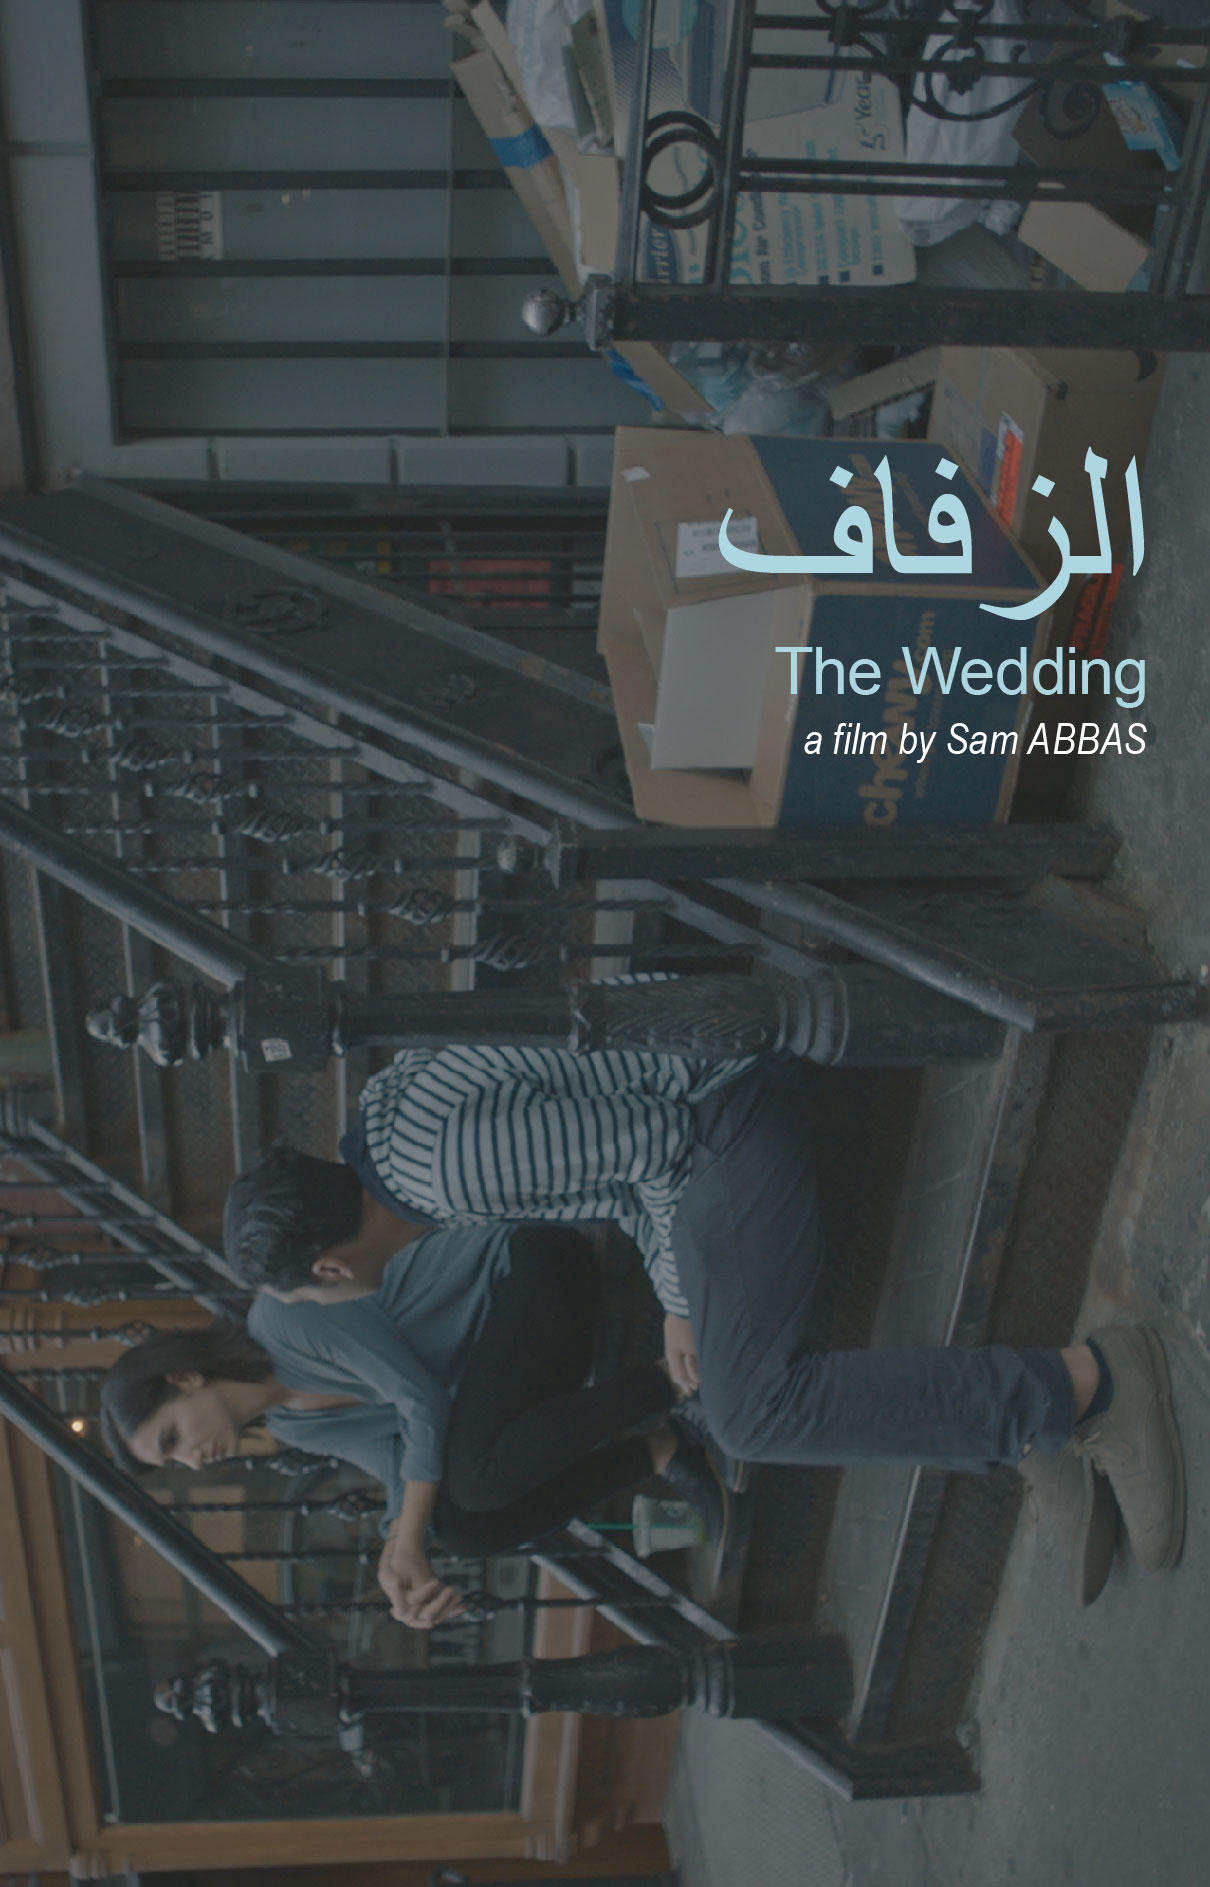 The Wedding poster art